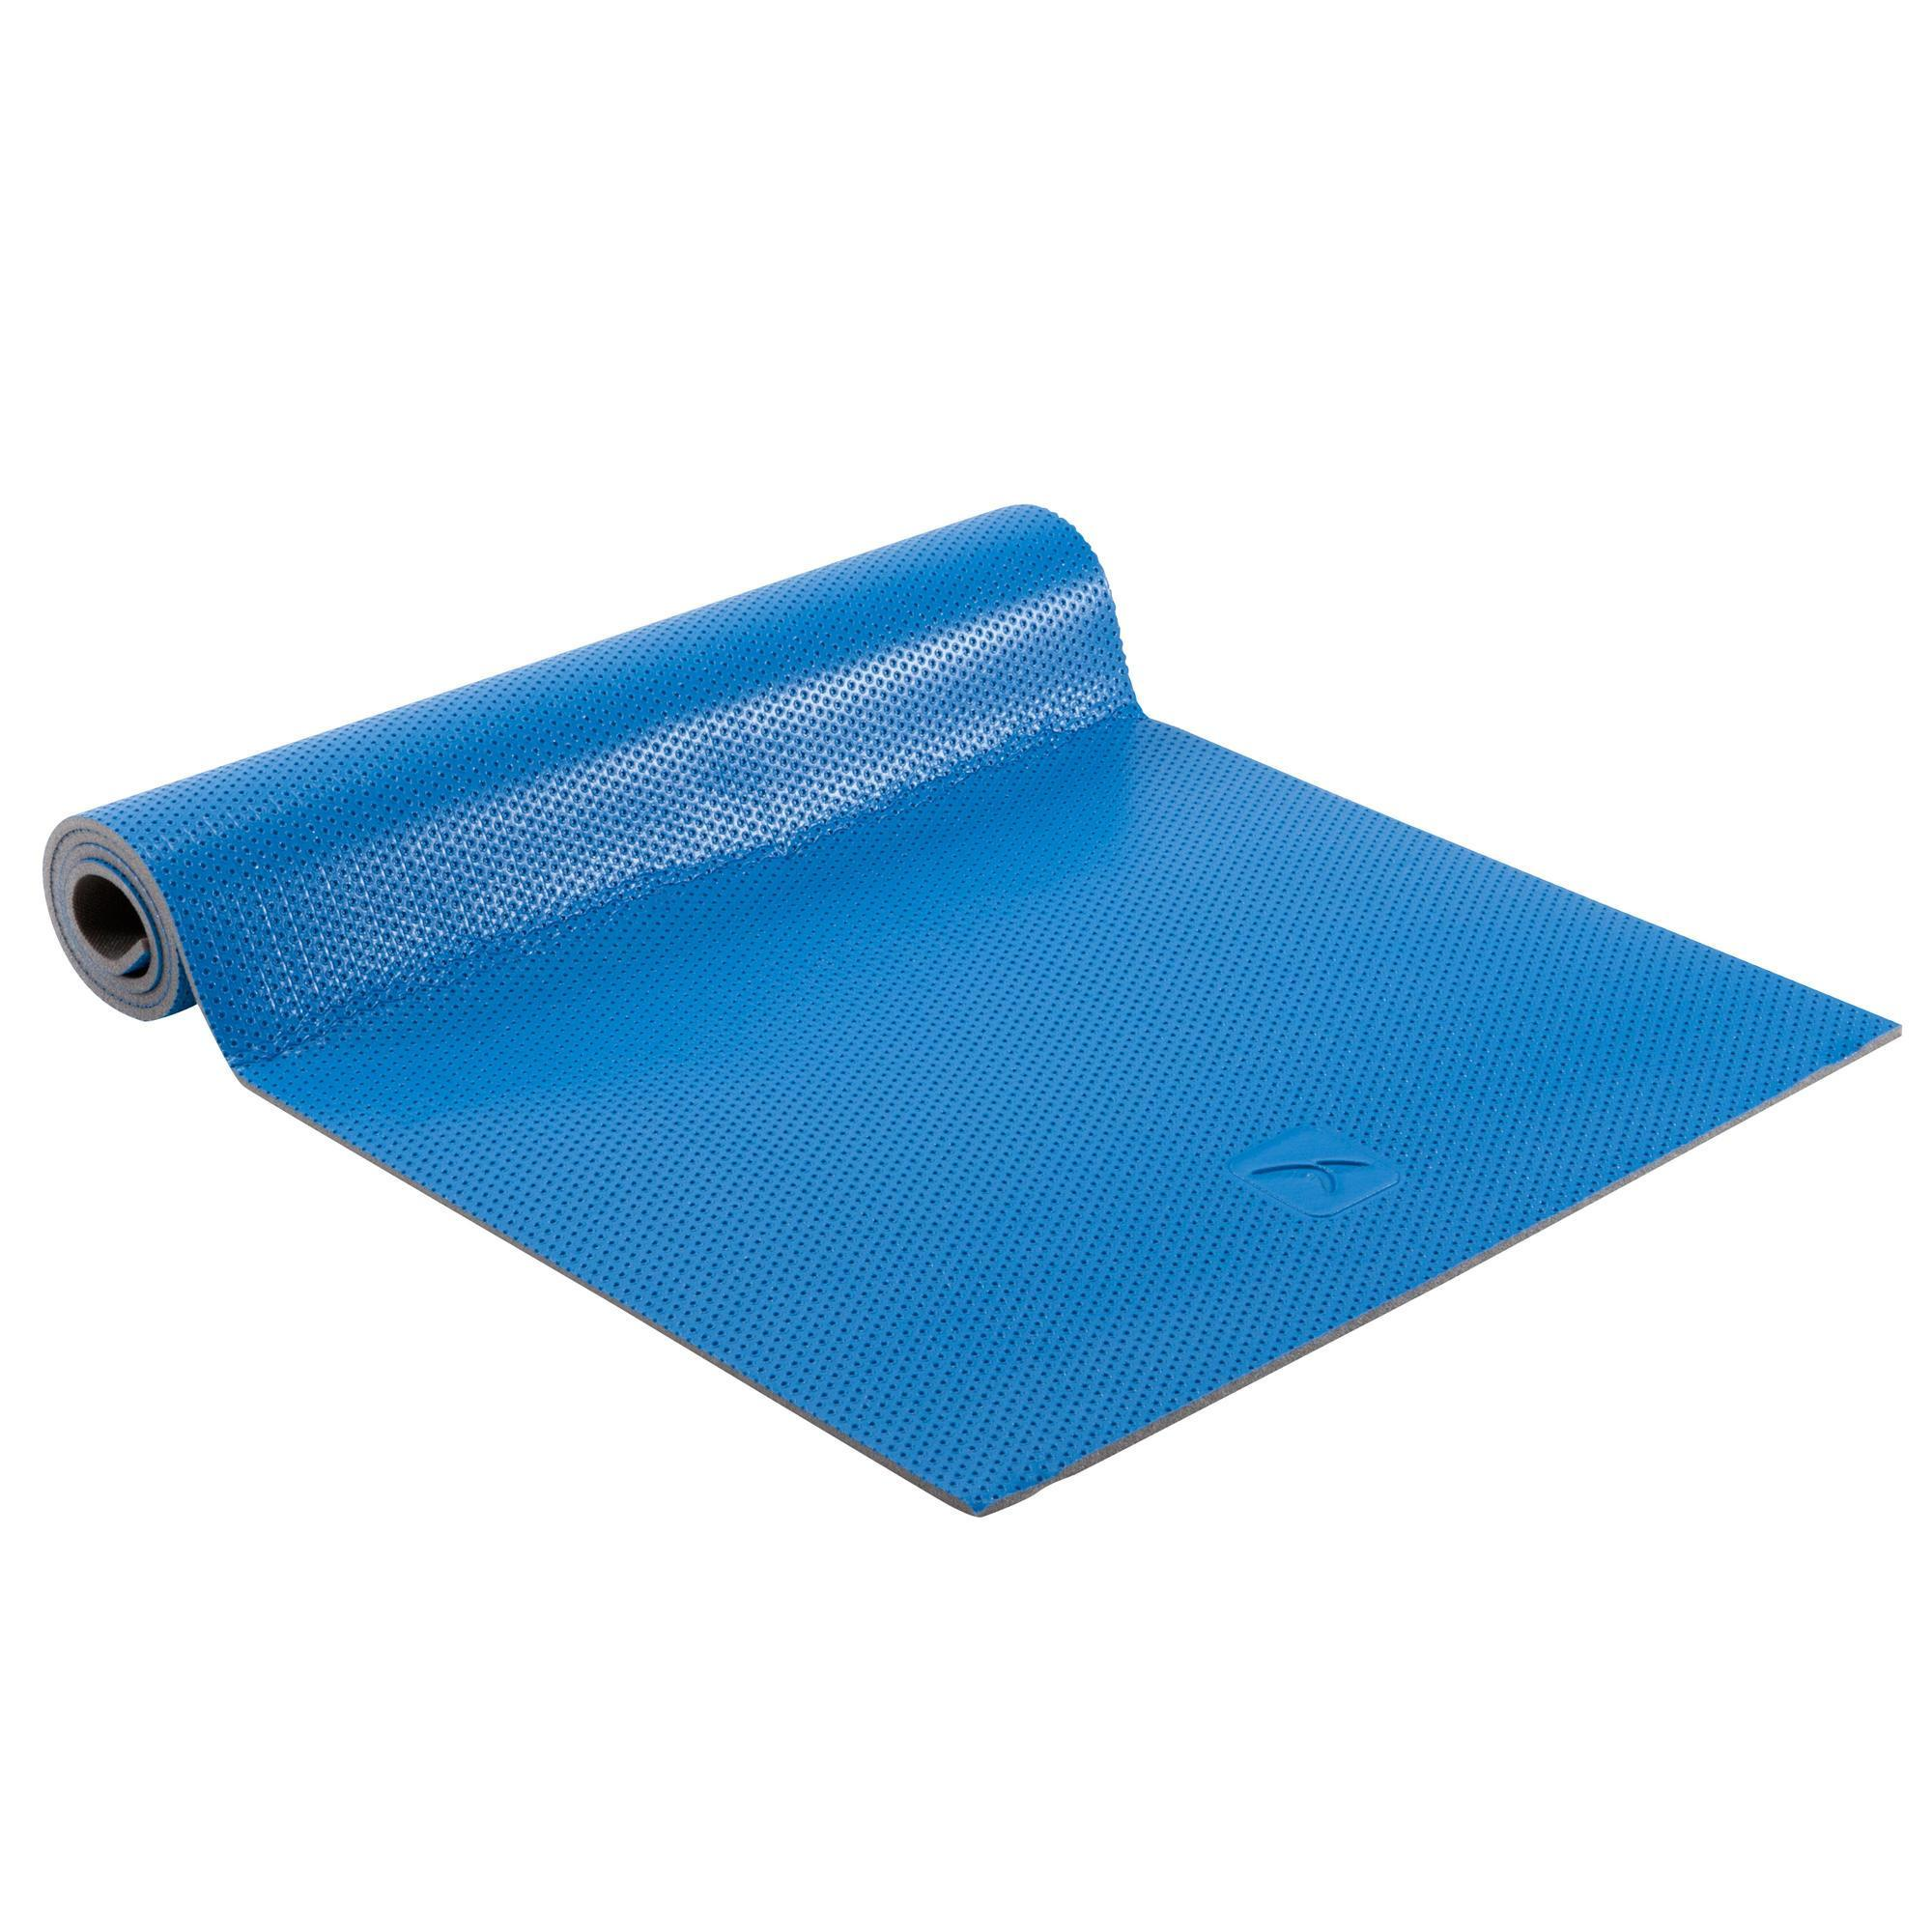 Tapis gym pilates 500 bleu domyos by decathlon - Tapis sol decathlon ...